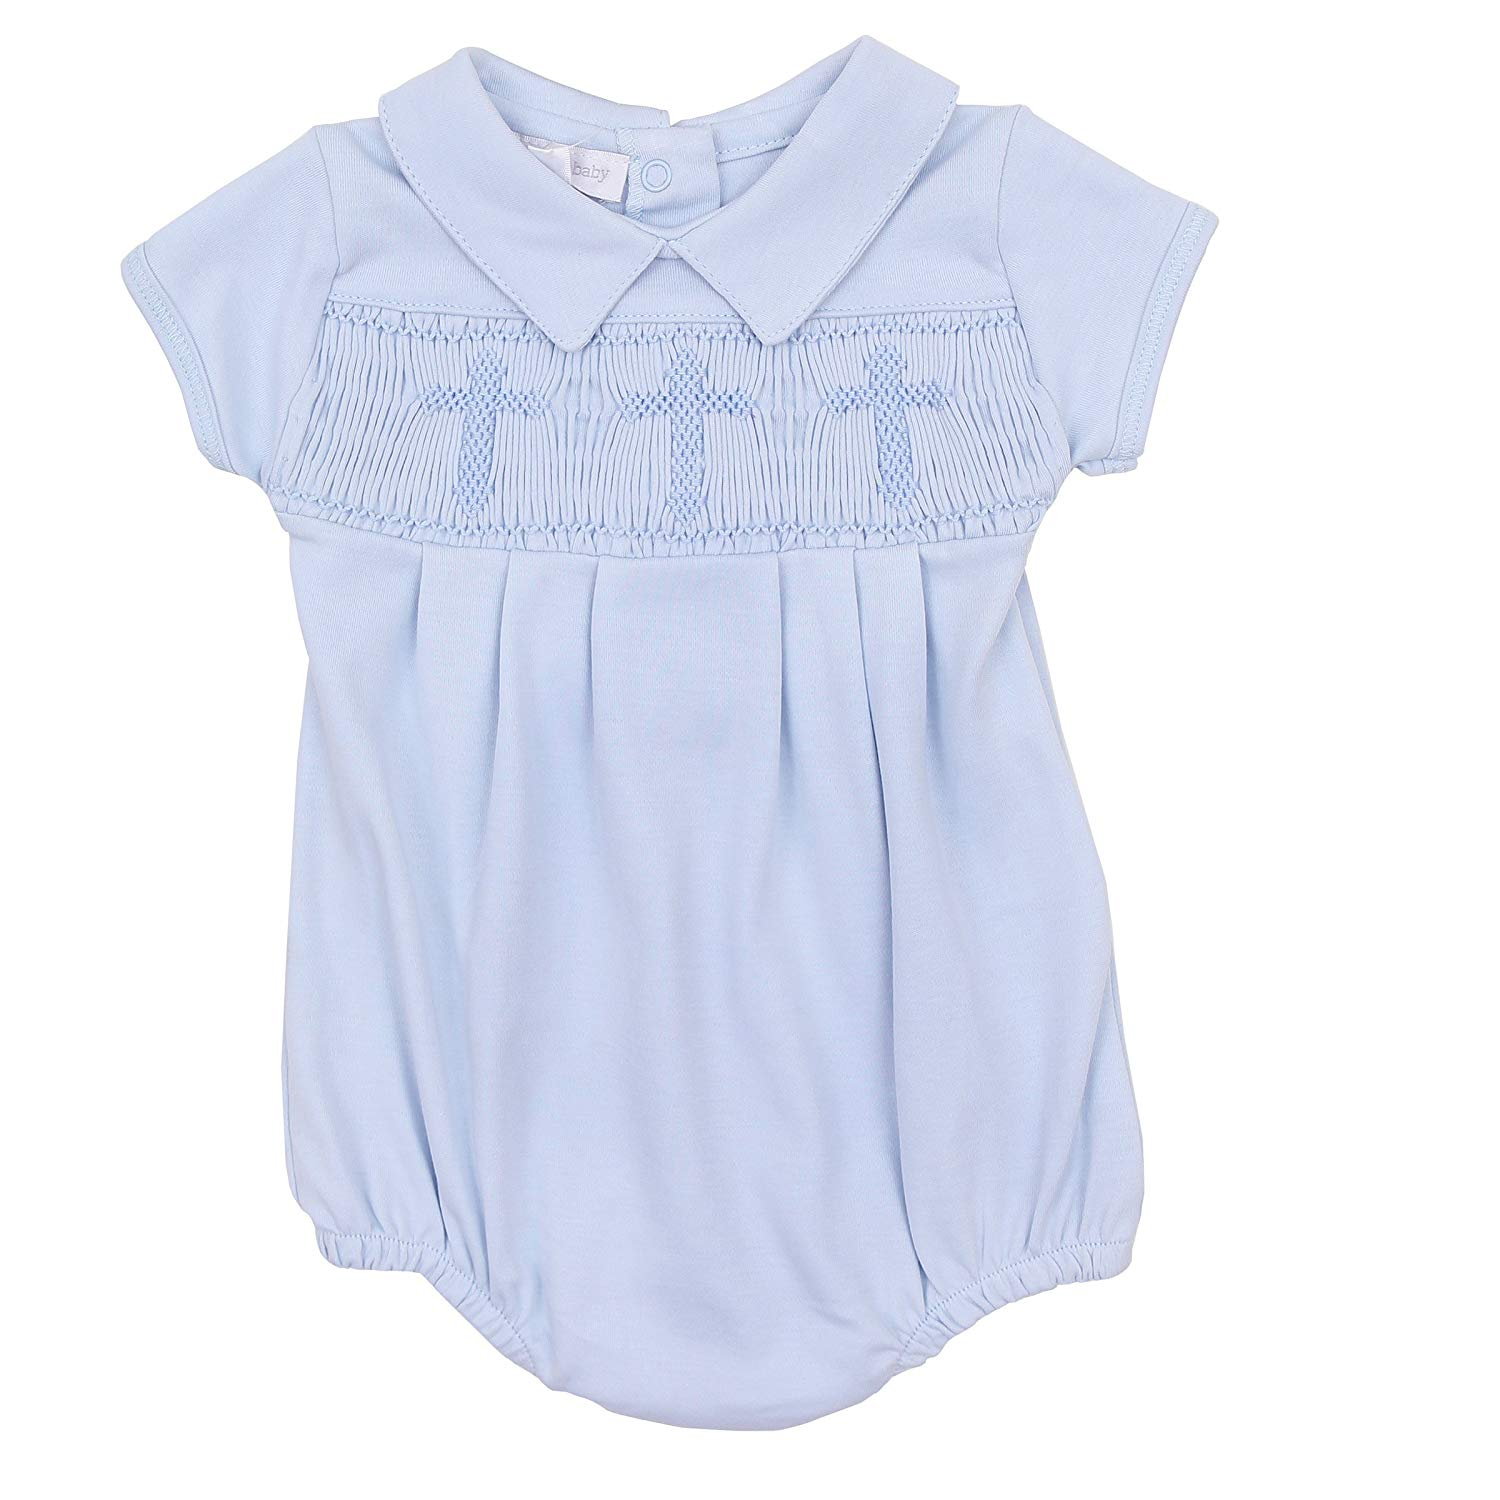 819a82e60 Get Quotations · Magnolia Baby Baby Boy Blessed Baby Smocked Collared Boy  Bubble Blue